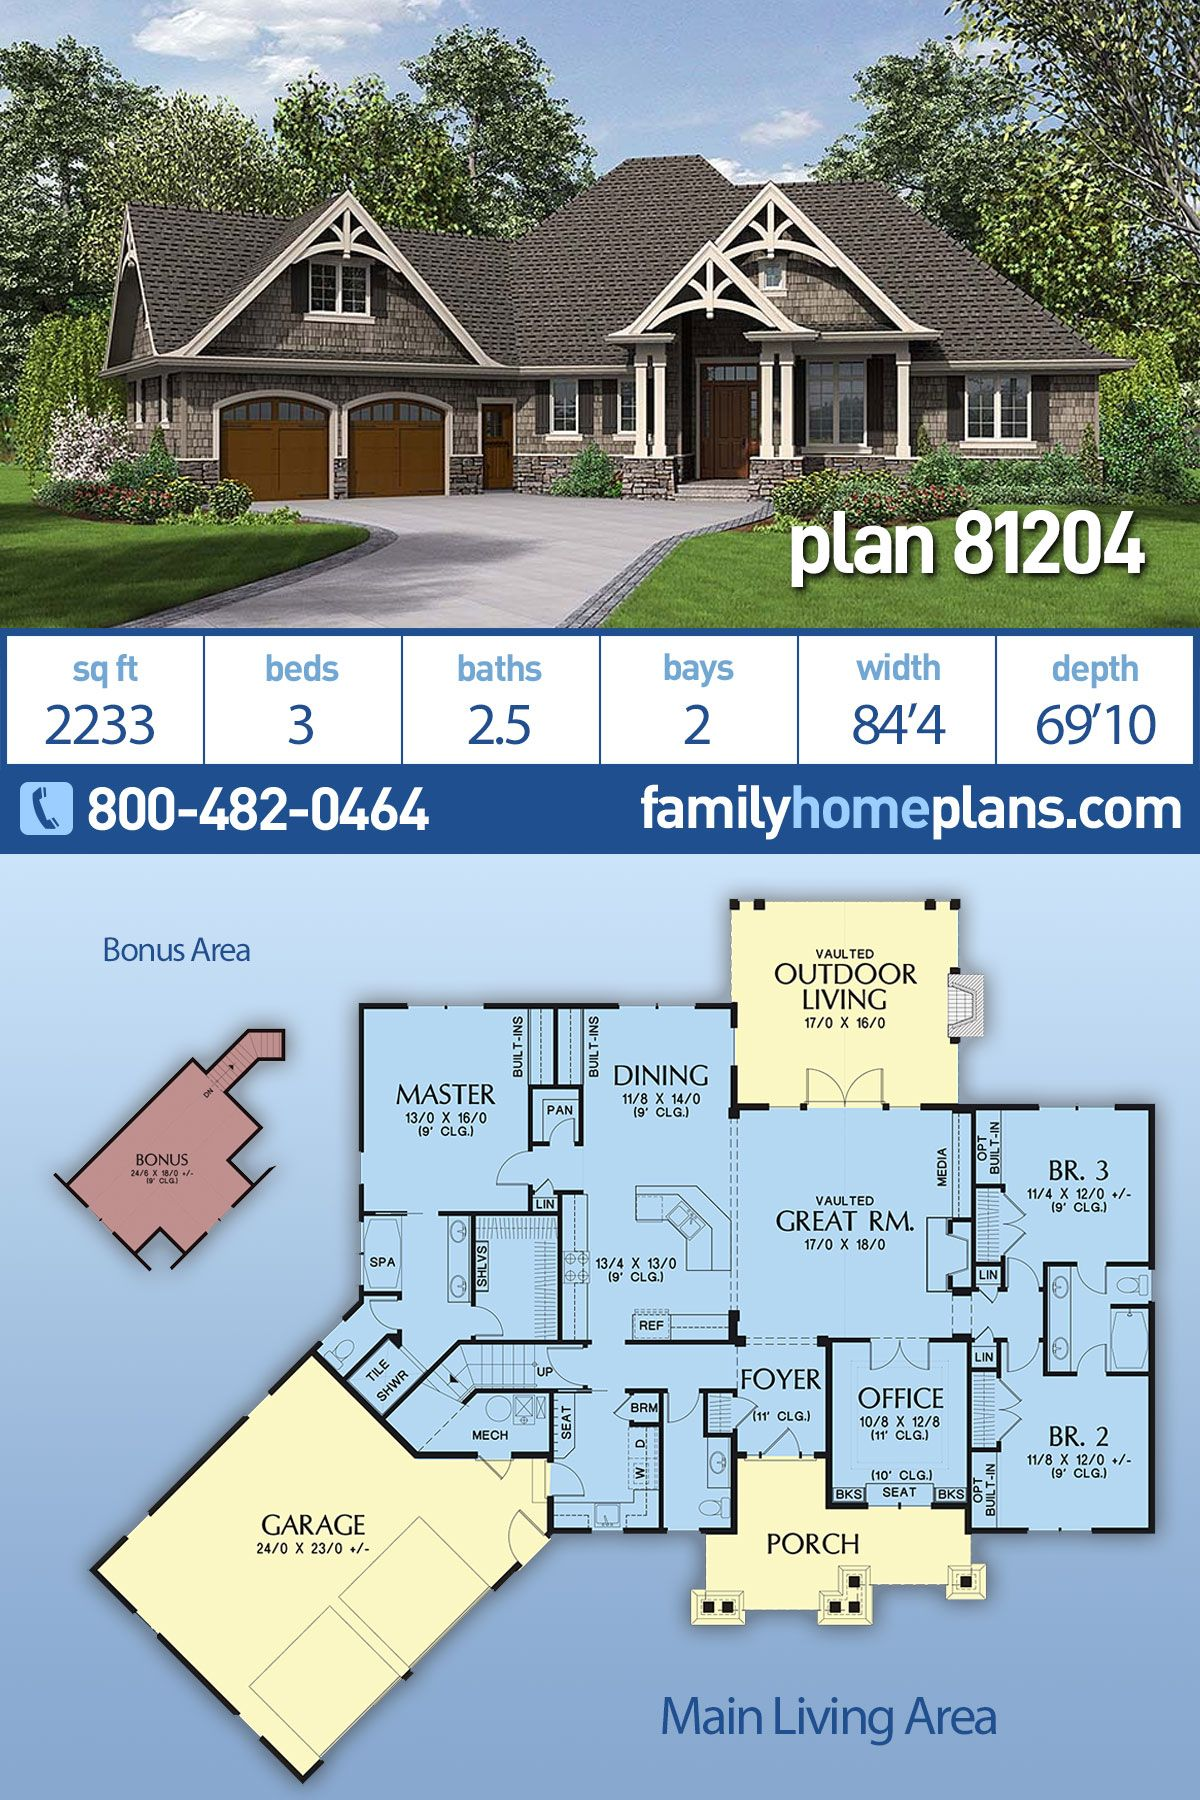 Craftsman Style House Plan 81204 With 3 Bed 3 Bath 2 Car Garage Craftsman Style House Plans Country Style House Plans Craftsman House